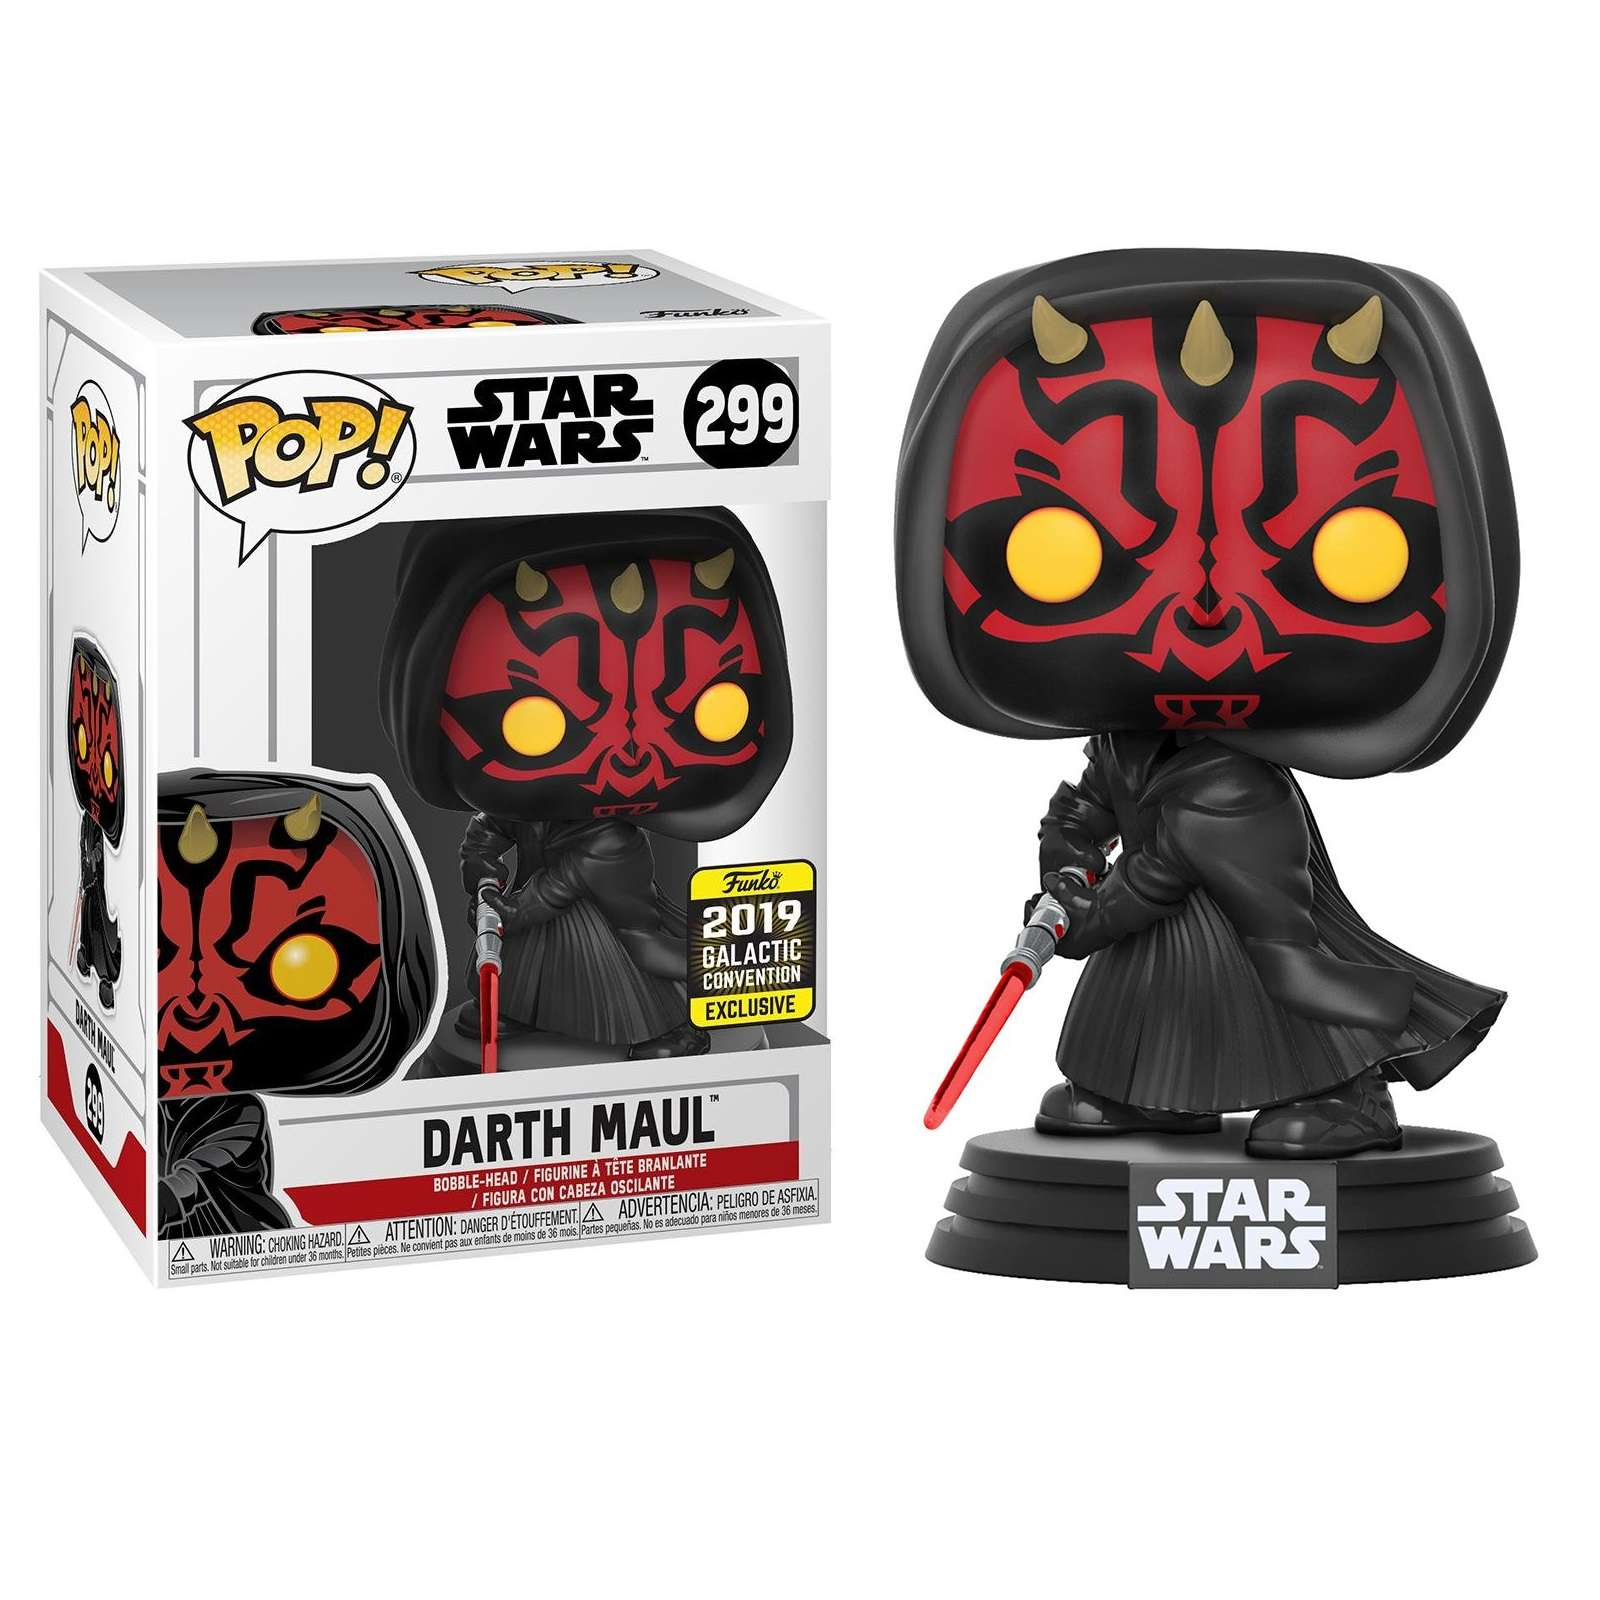 Star Wars Darth Maul Exclusive Funko POP!